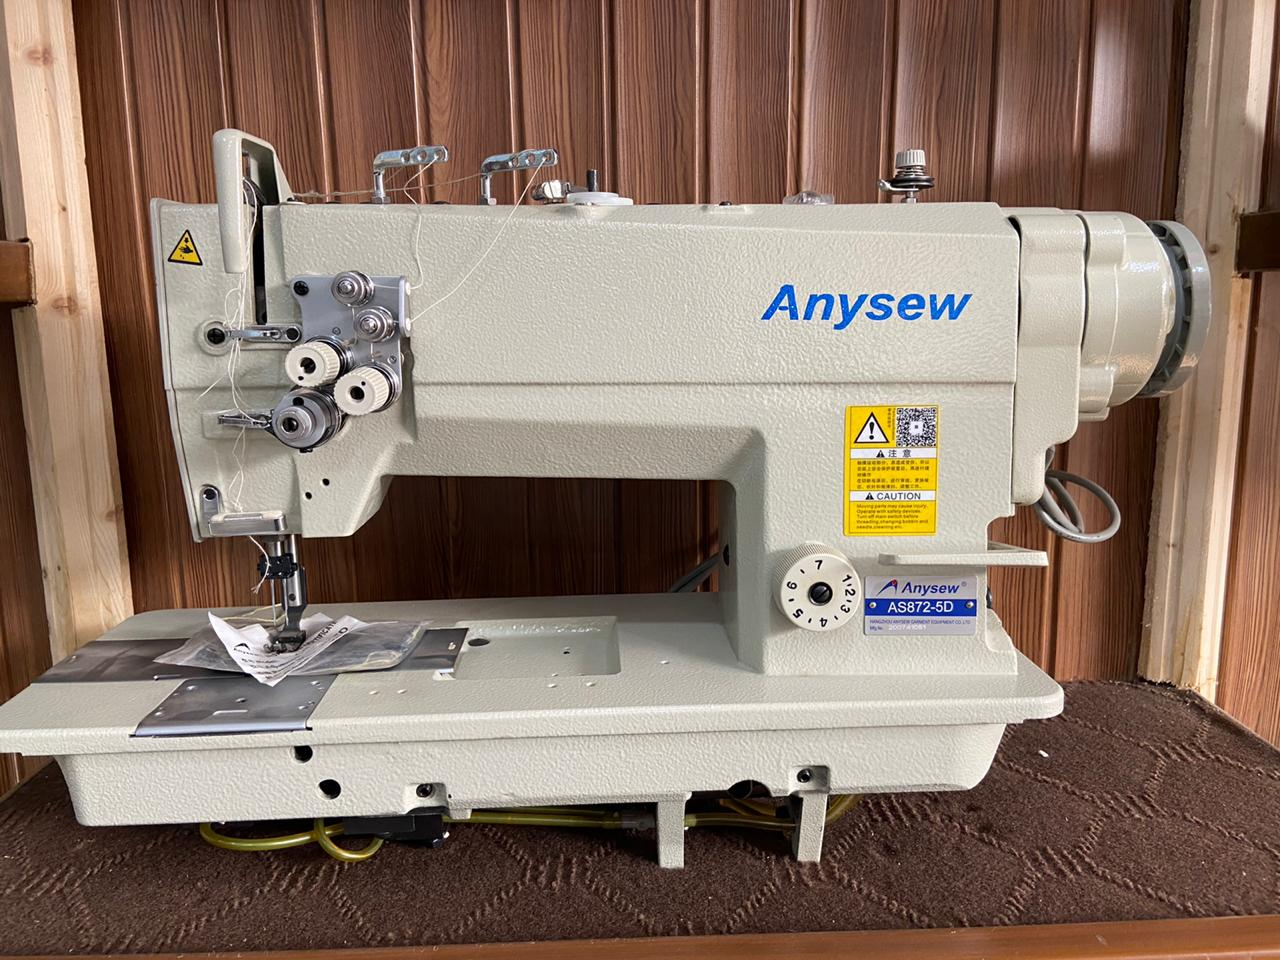 Anysew Fixed Bar Direct Drive Double Needle AS-872-5D